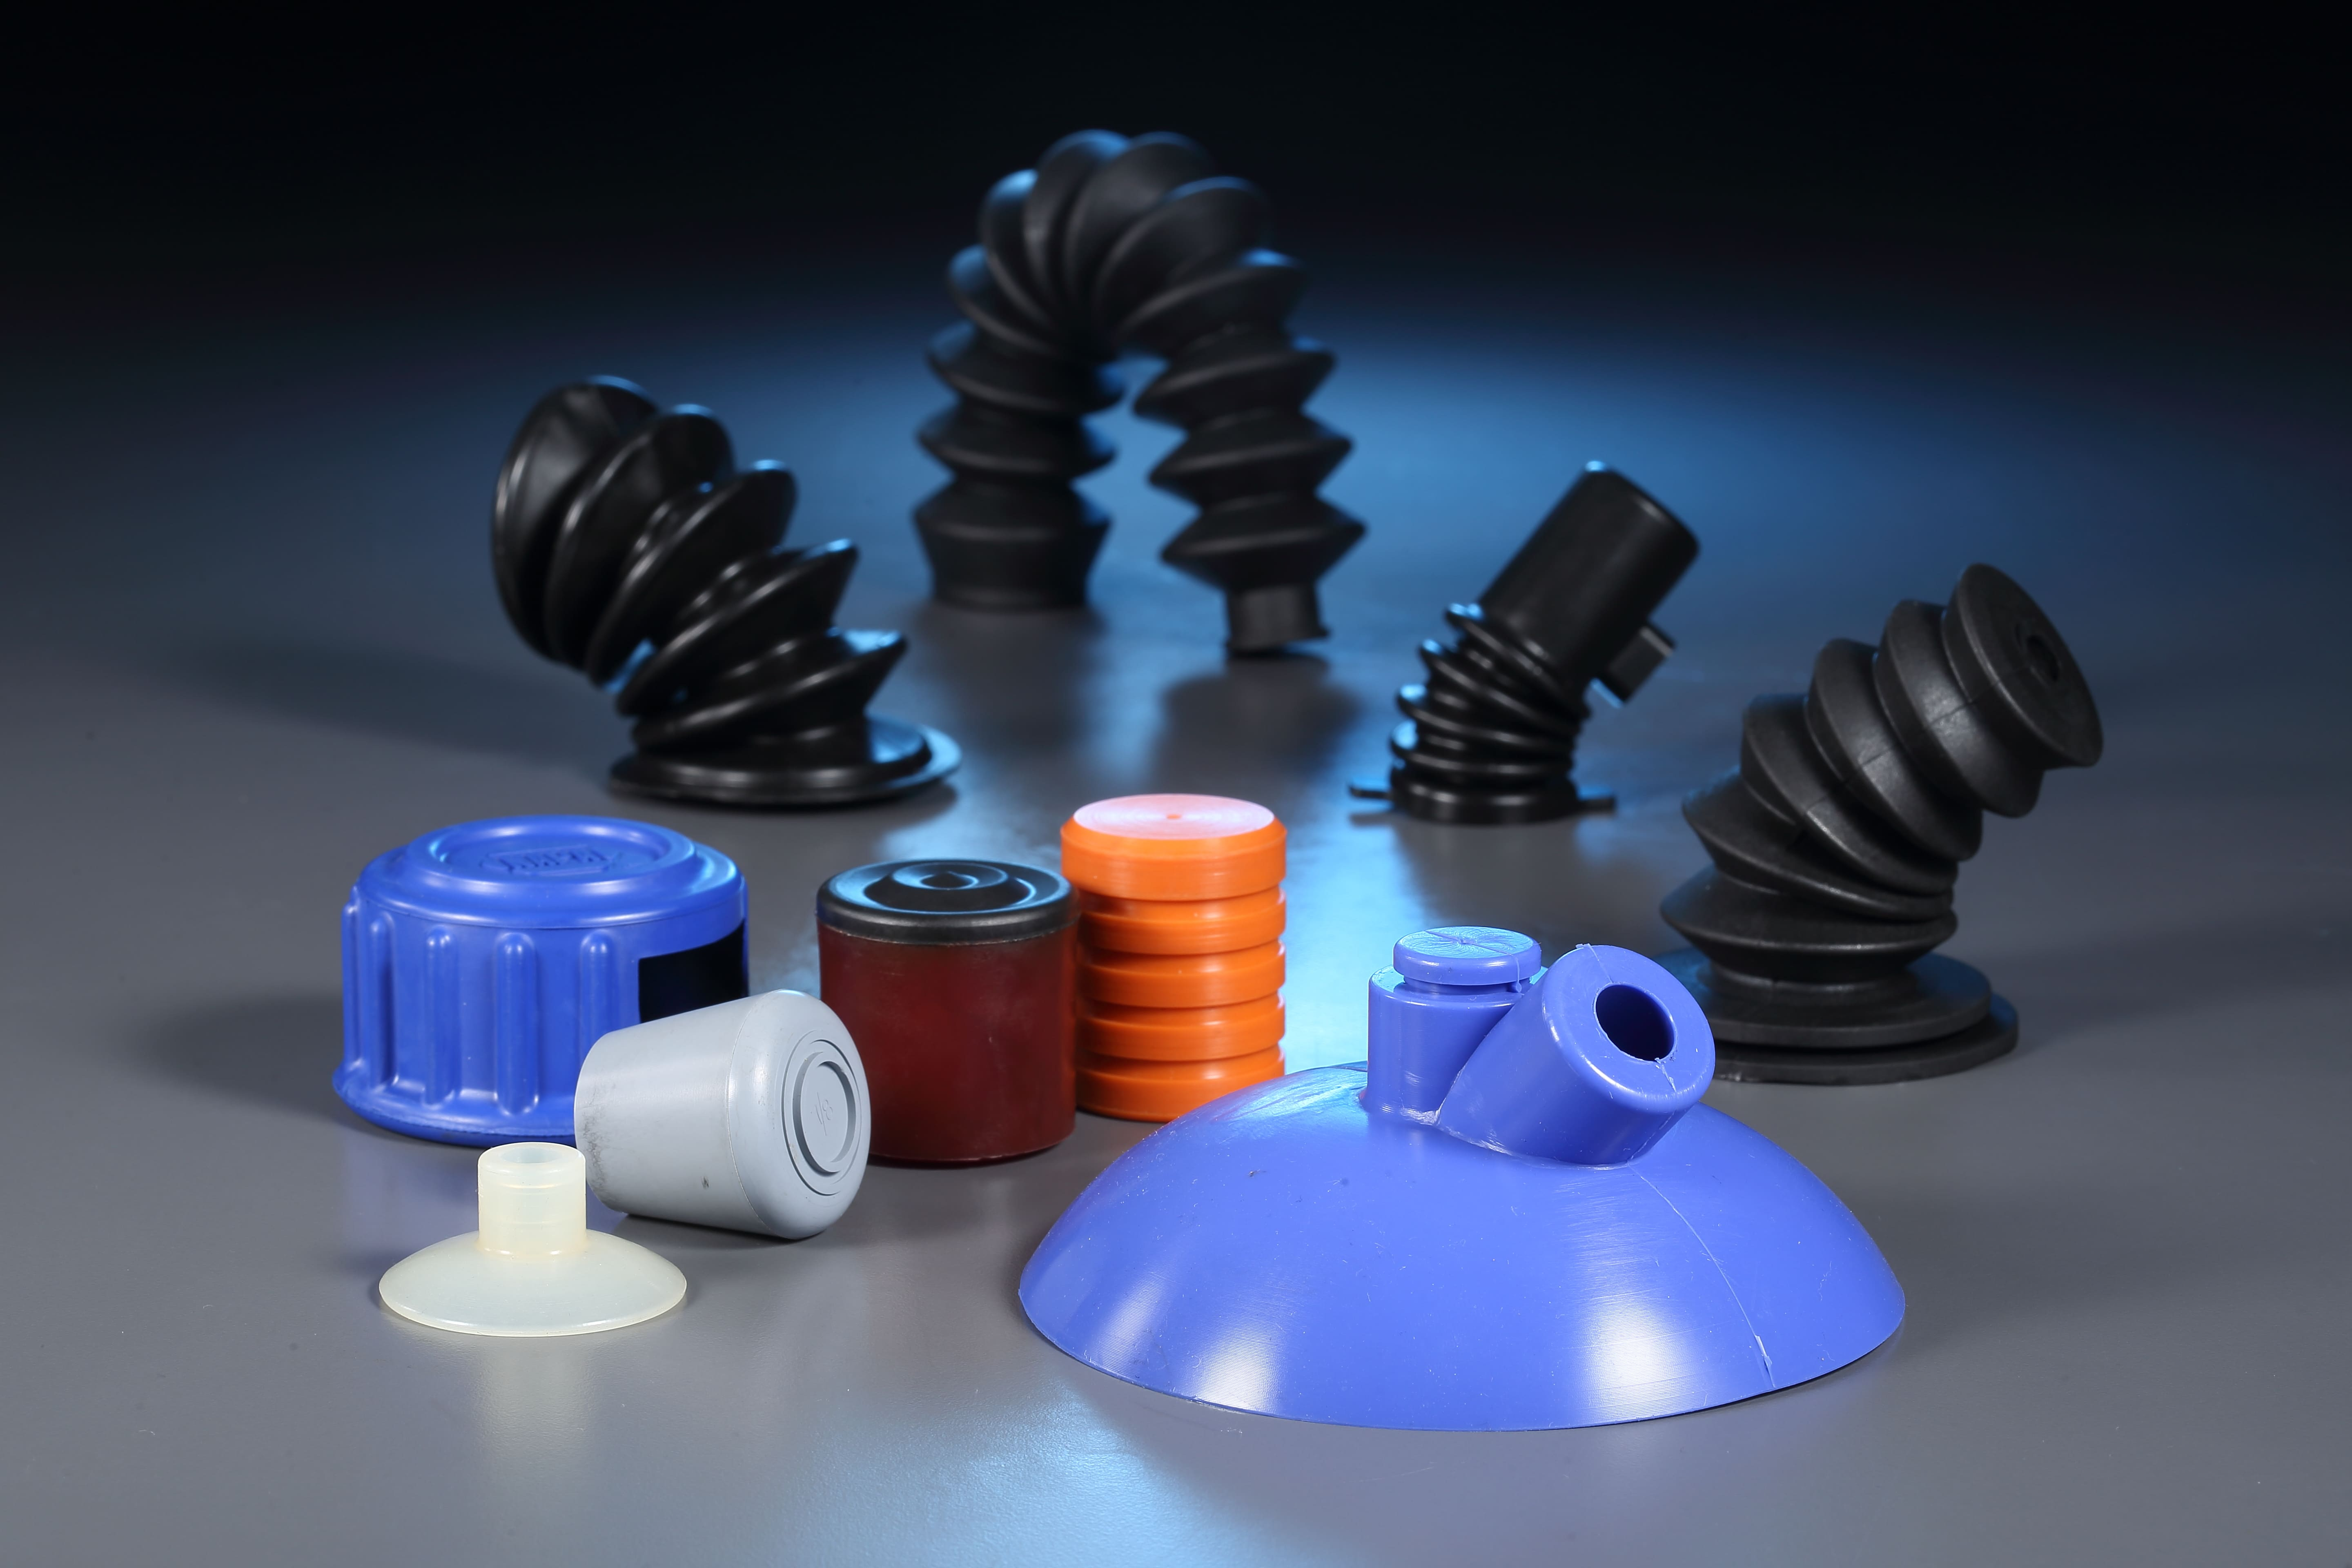 Automobile Drive Shaft Boots for Rubber, Plastic Parts made by Yee Ming Ying Co., LTD. 昱銘穎有限公司 - MatchSupplier.com